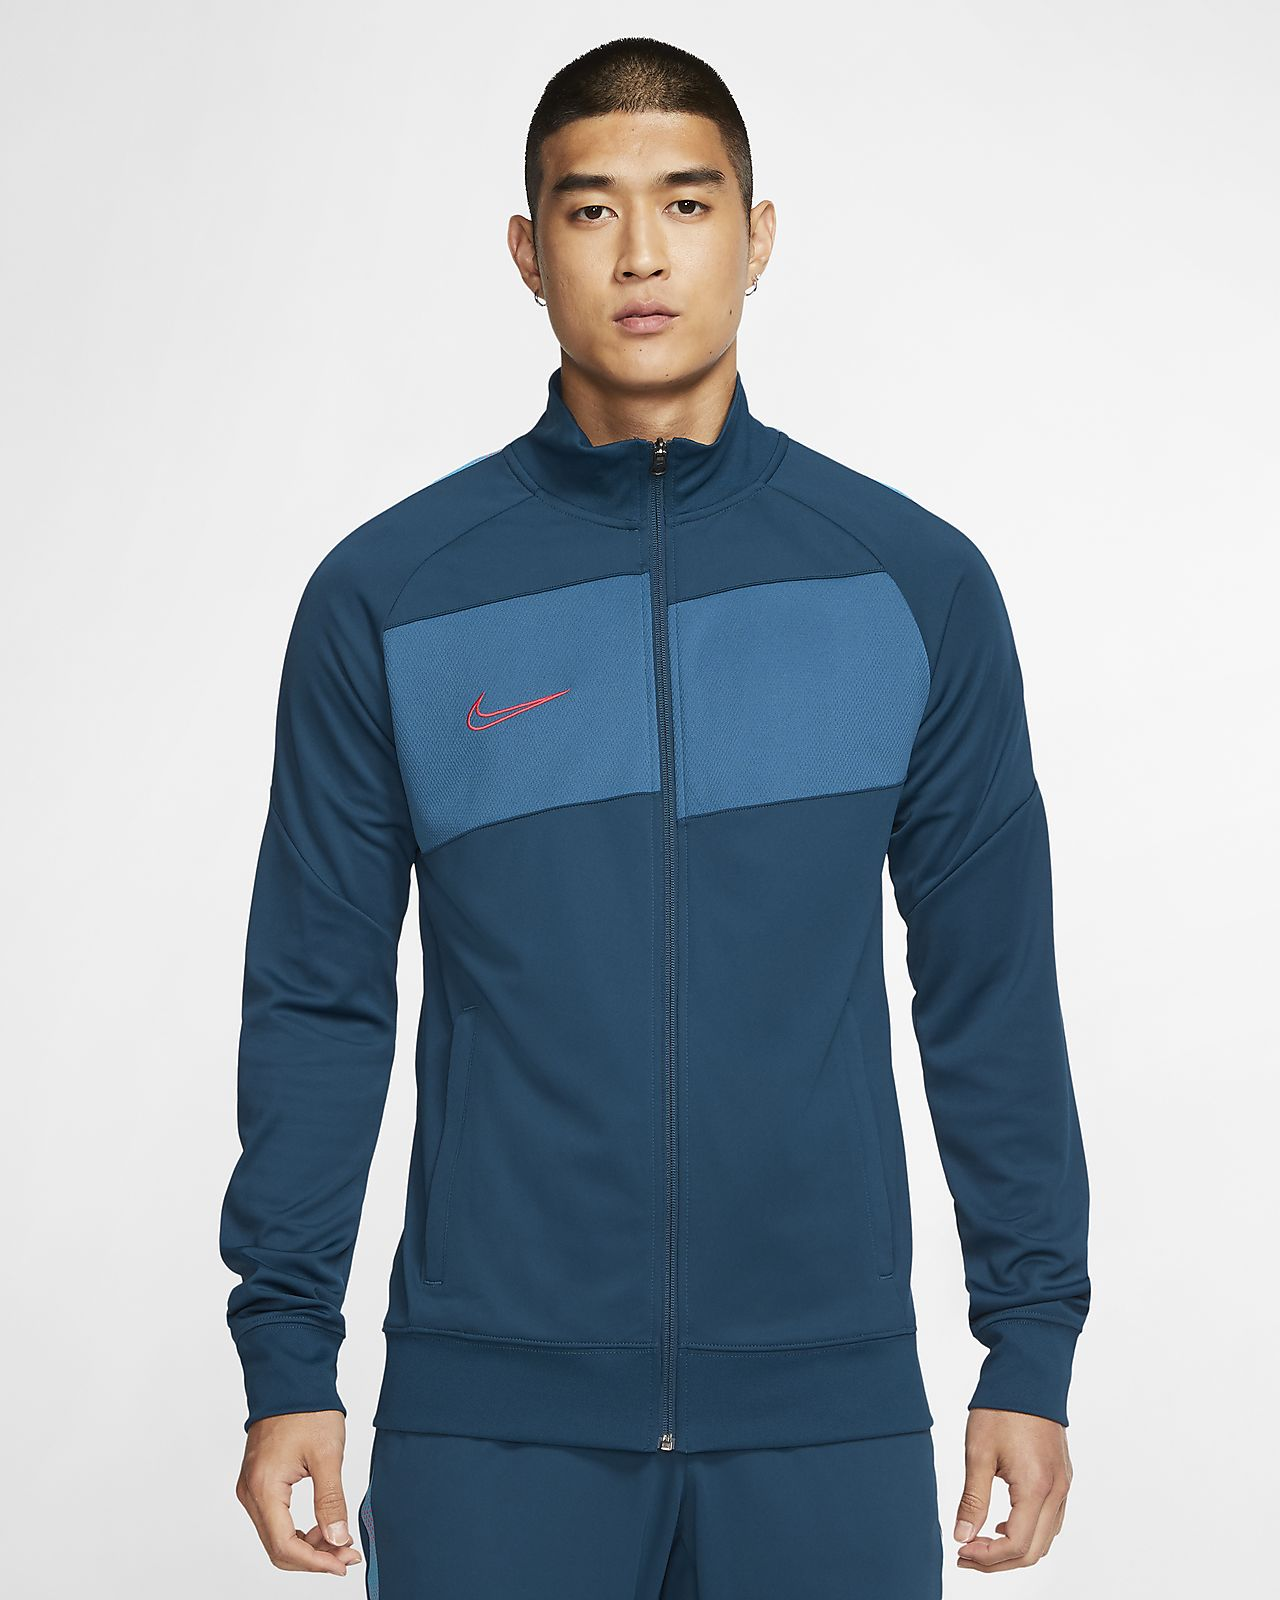 Nike Dri-FIT Academy Pro Men's Football Jacket